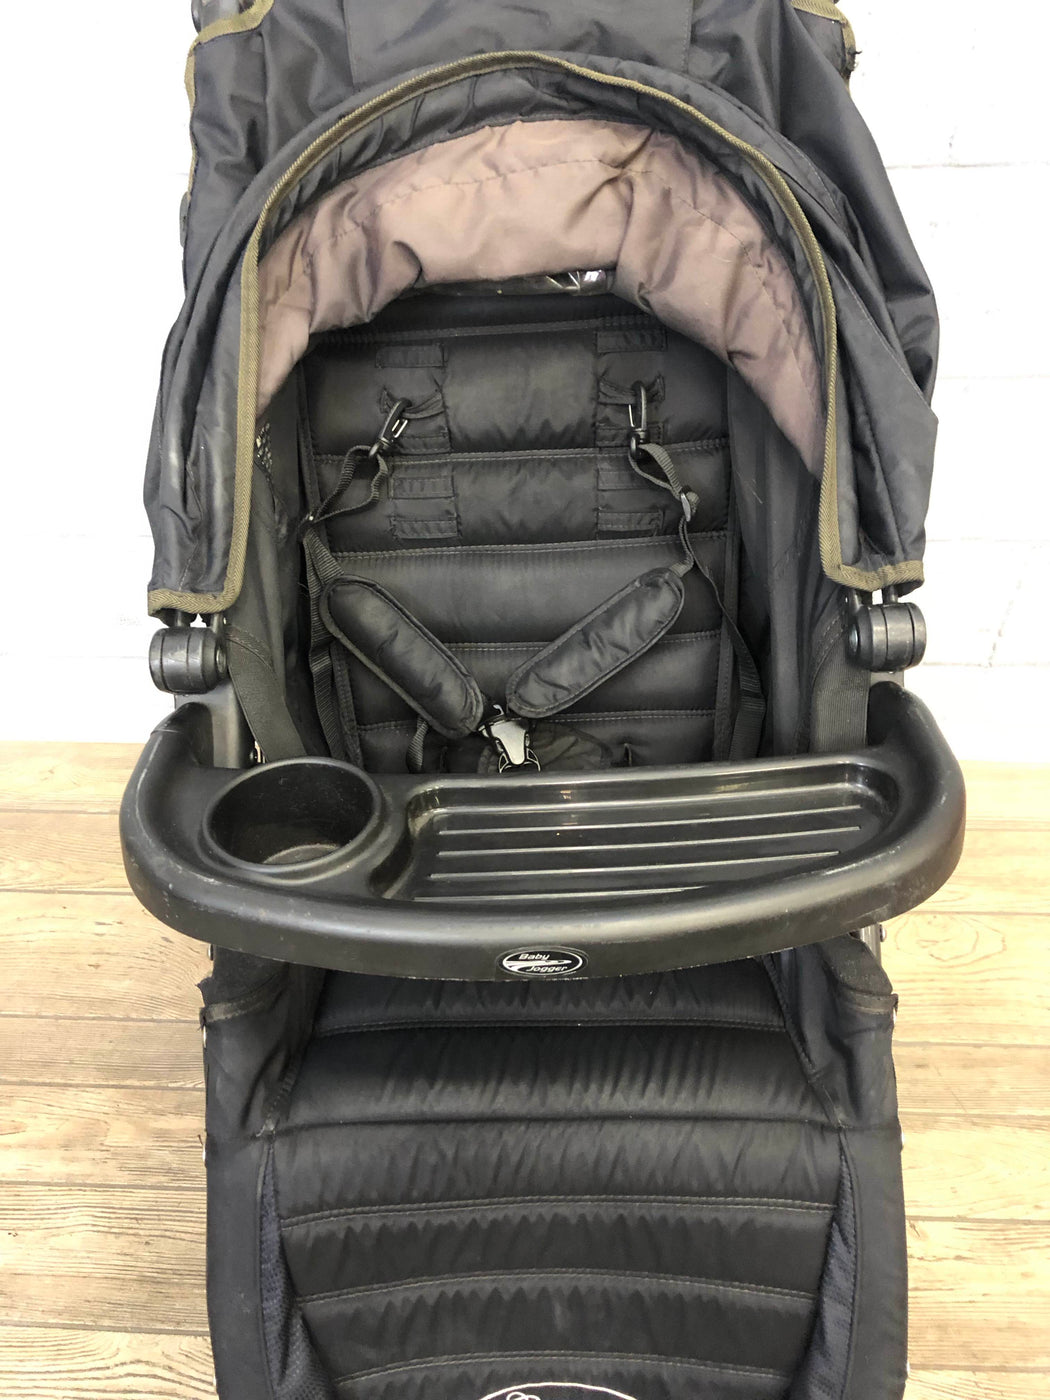 Baby Jogger City Mini GT Single Stroller, 2013